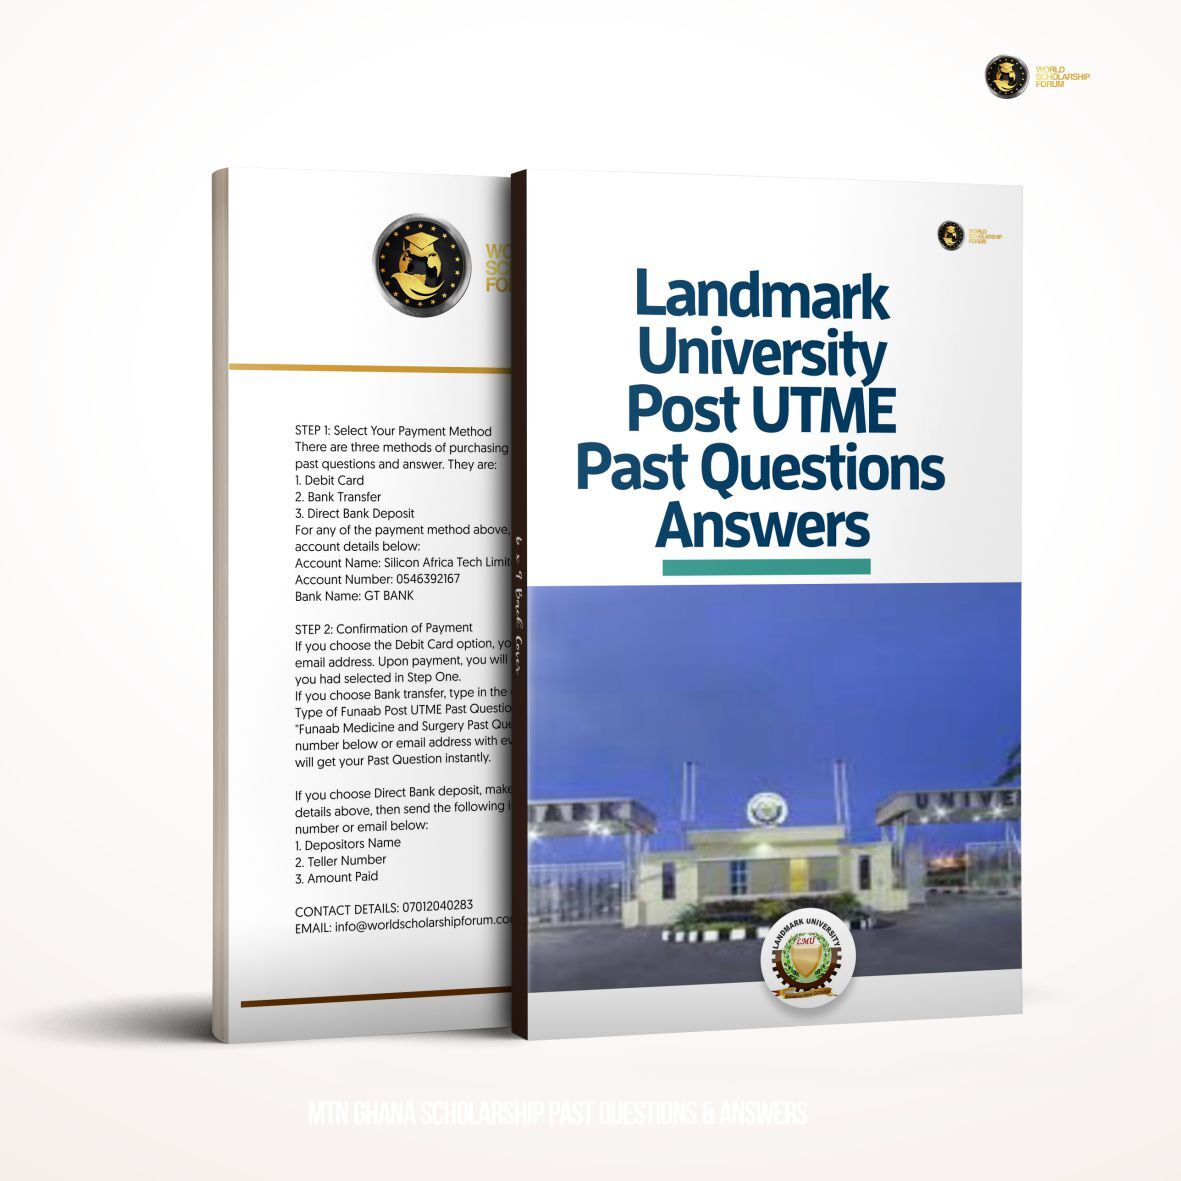 Updated Landmark University Post Utme Past Questions & Answers